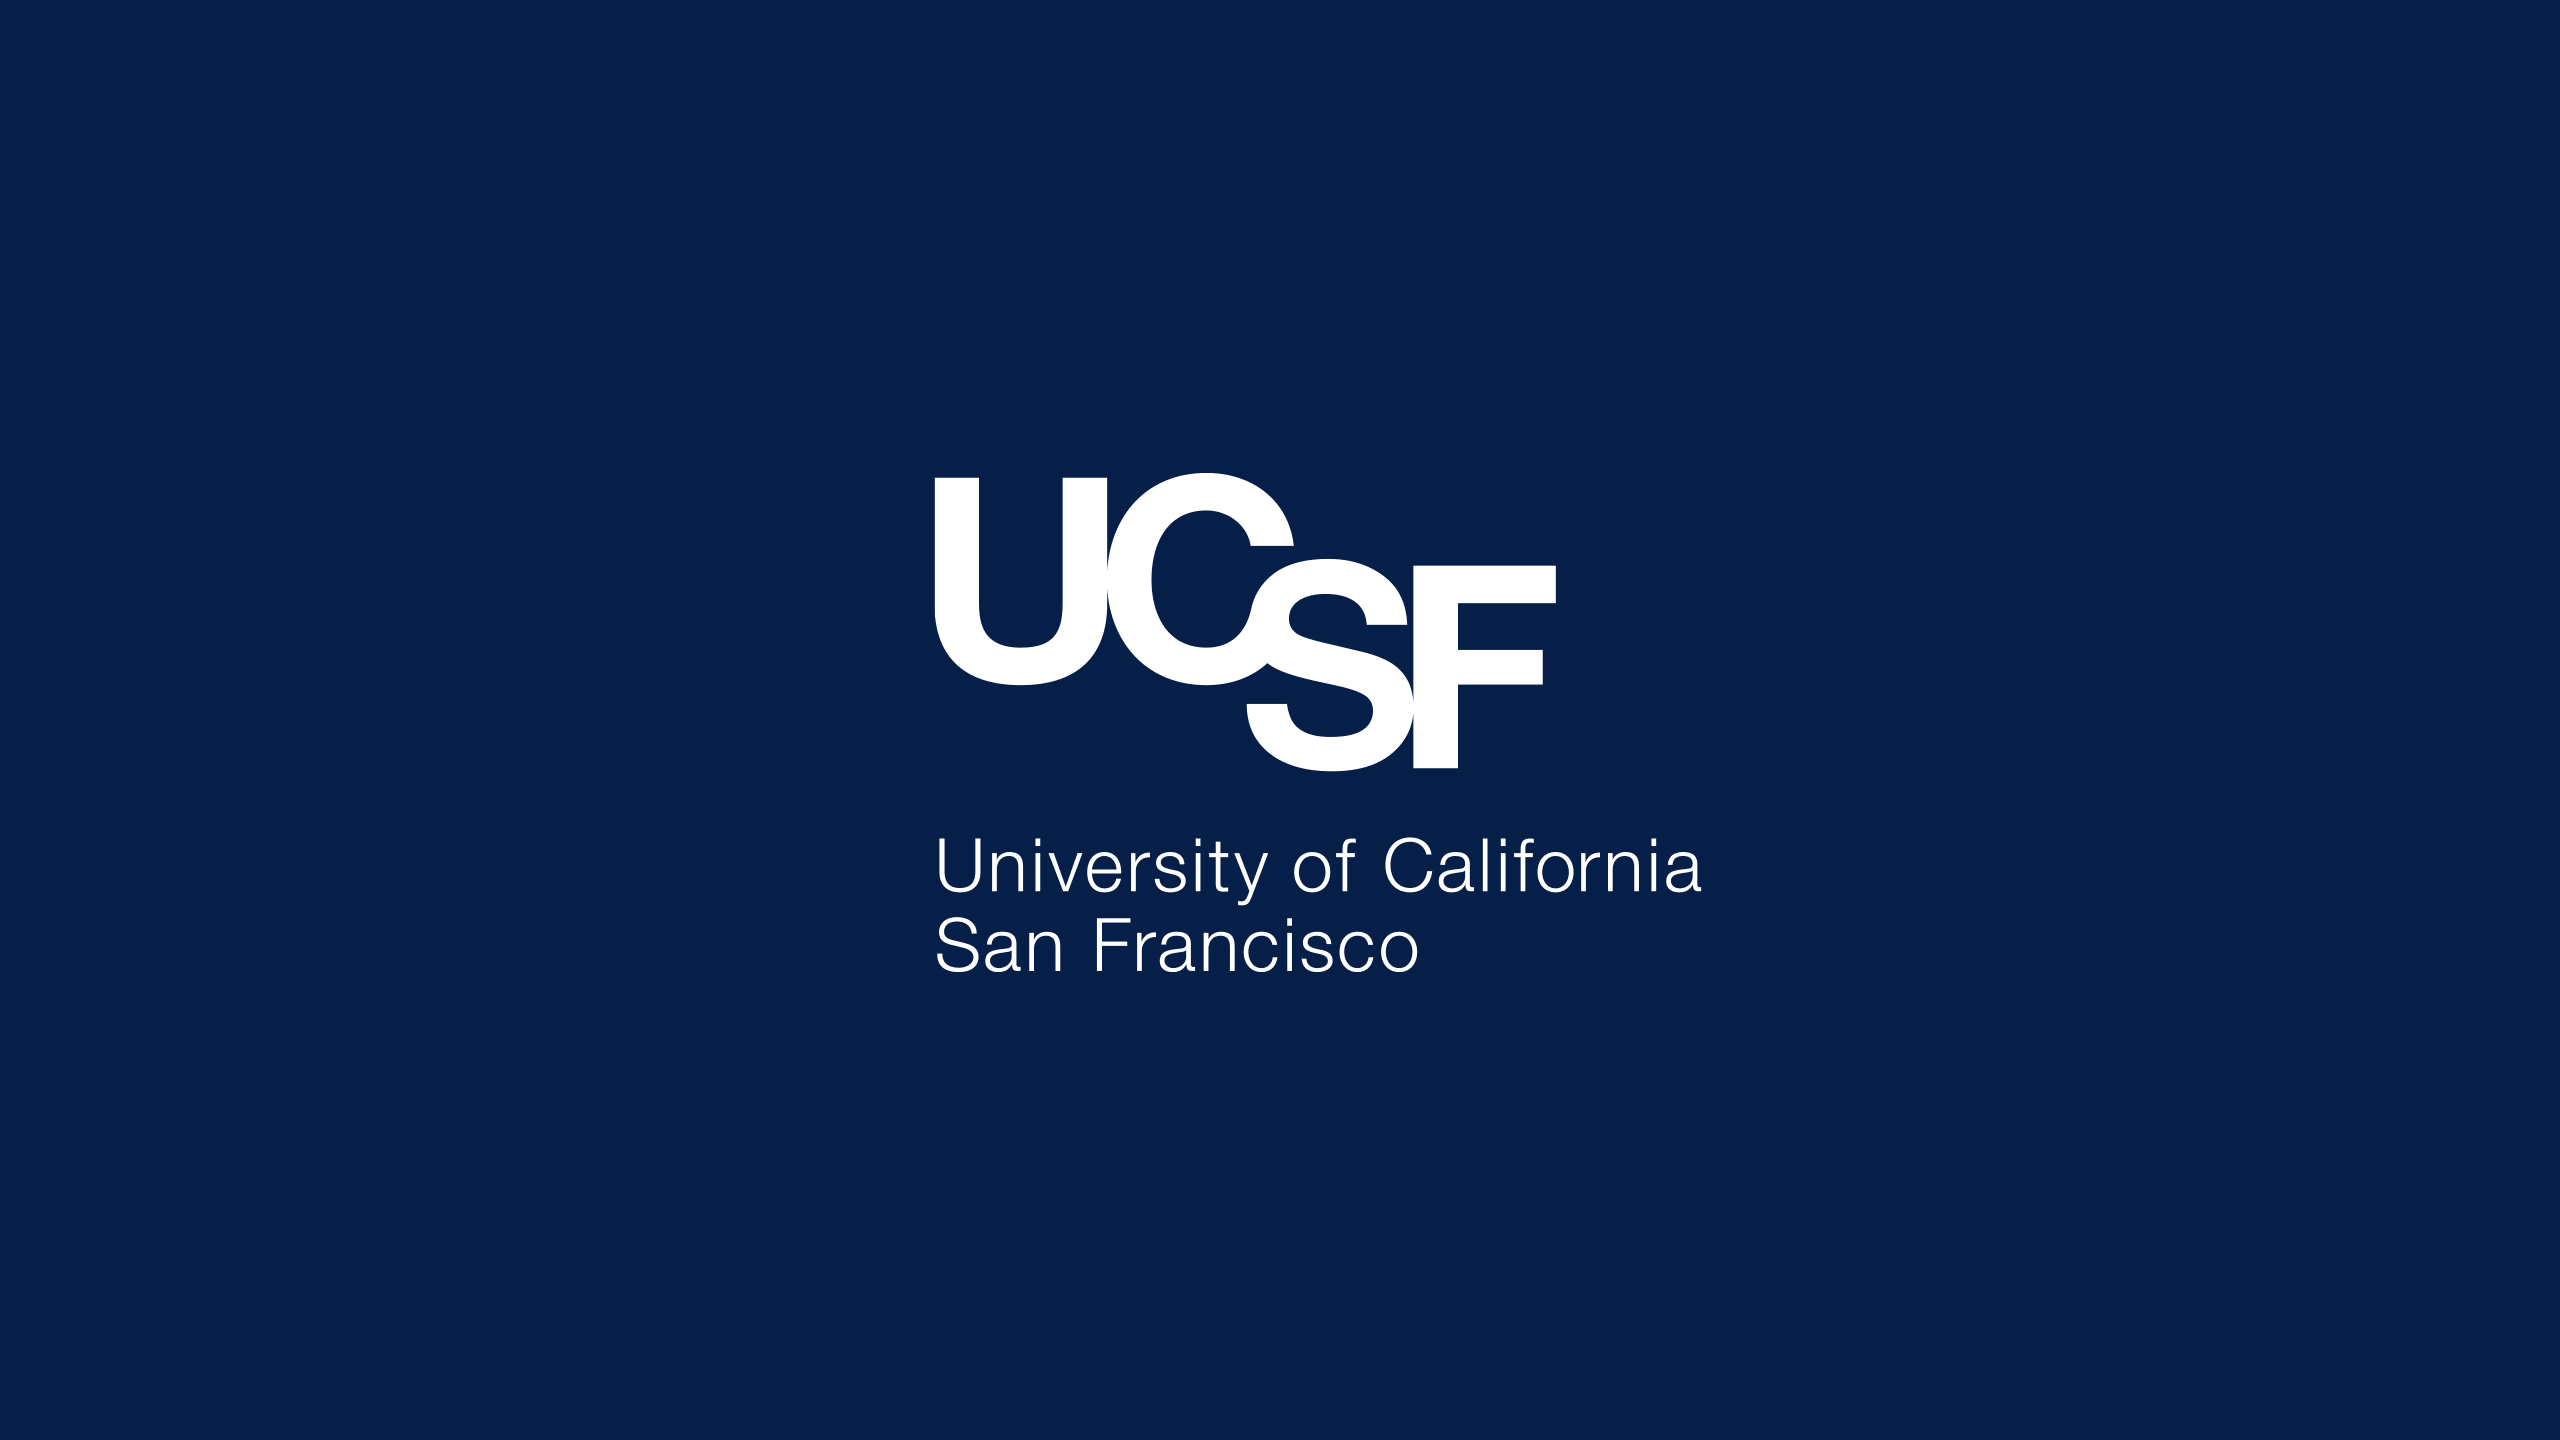 UCSF Master Brand Logo Reversed on Navy Background